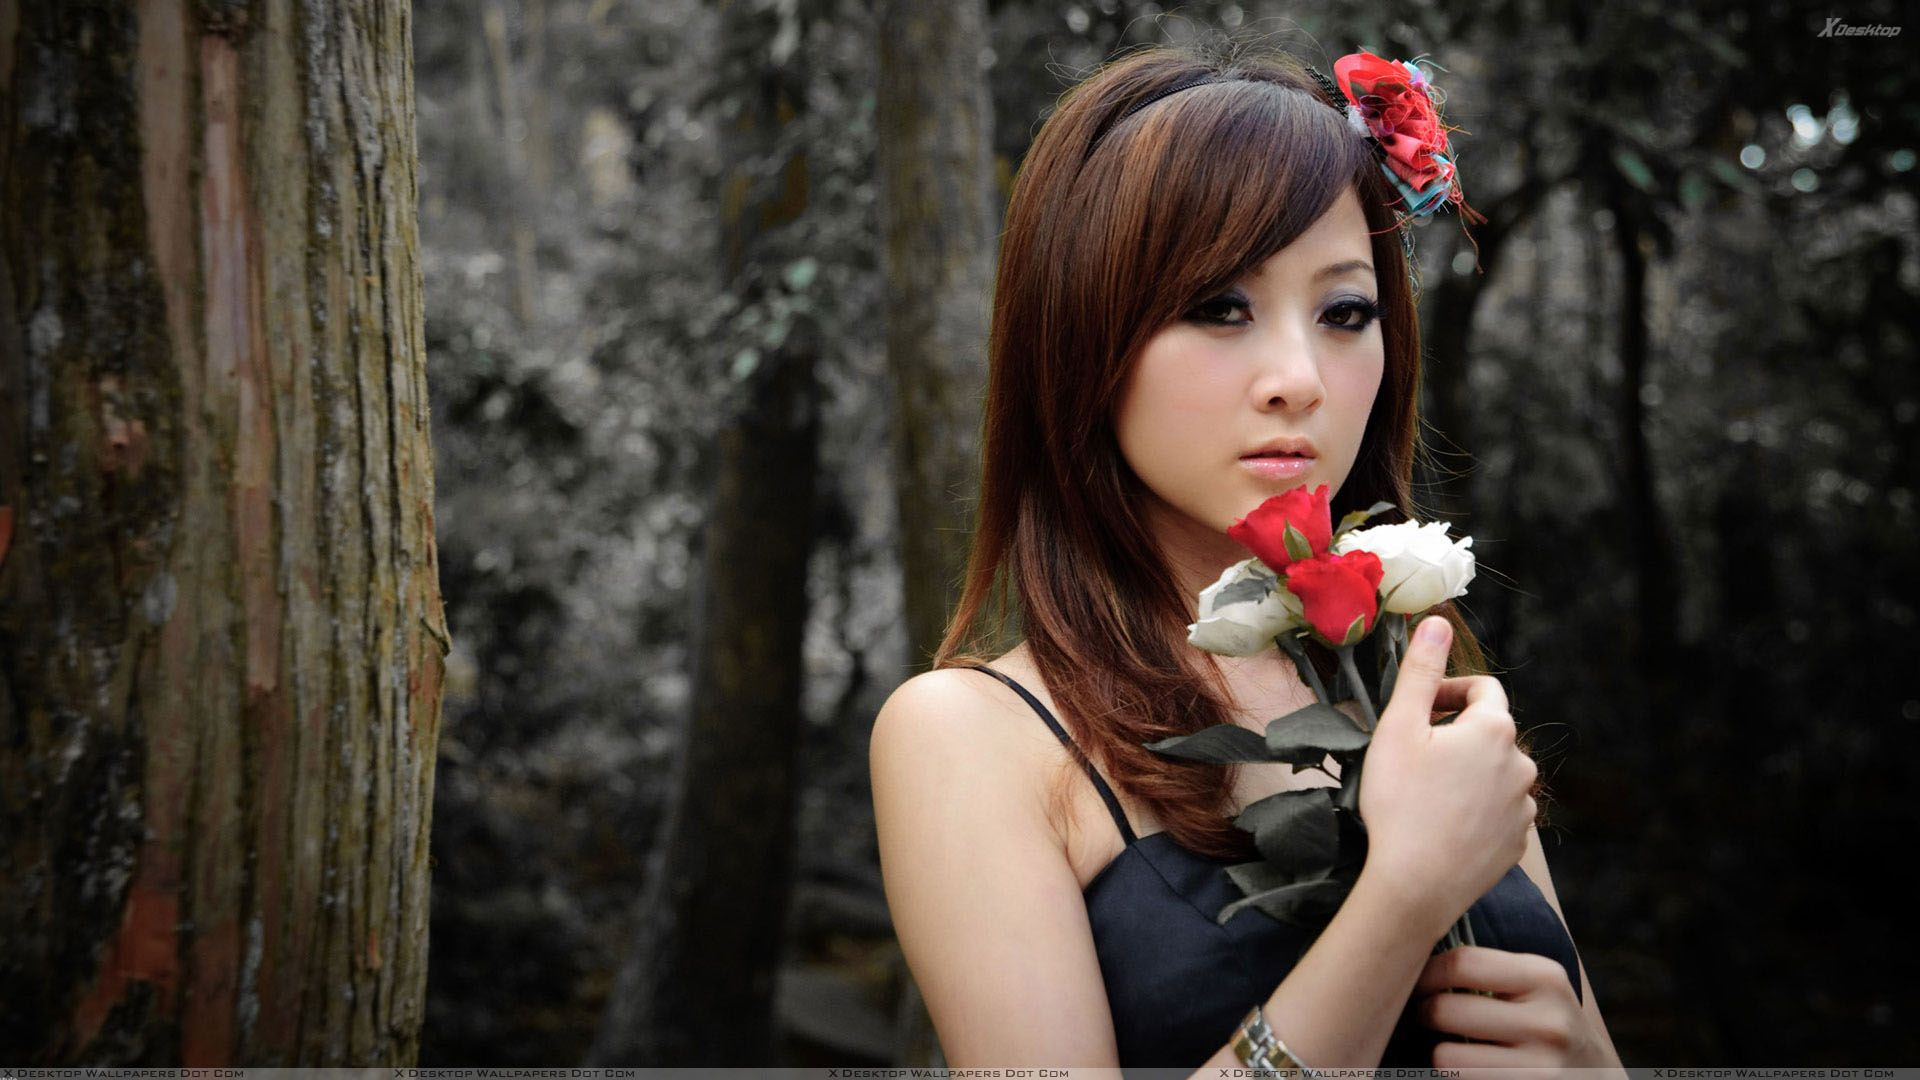 Beautiful Red Asian Wallpapers Top Free Beautiful Red Asian